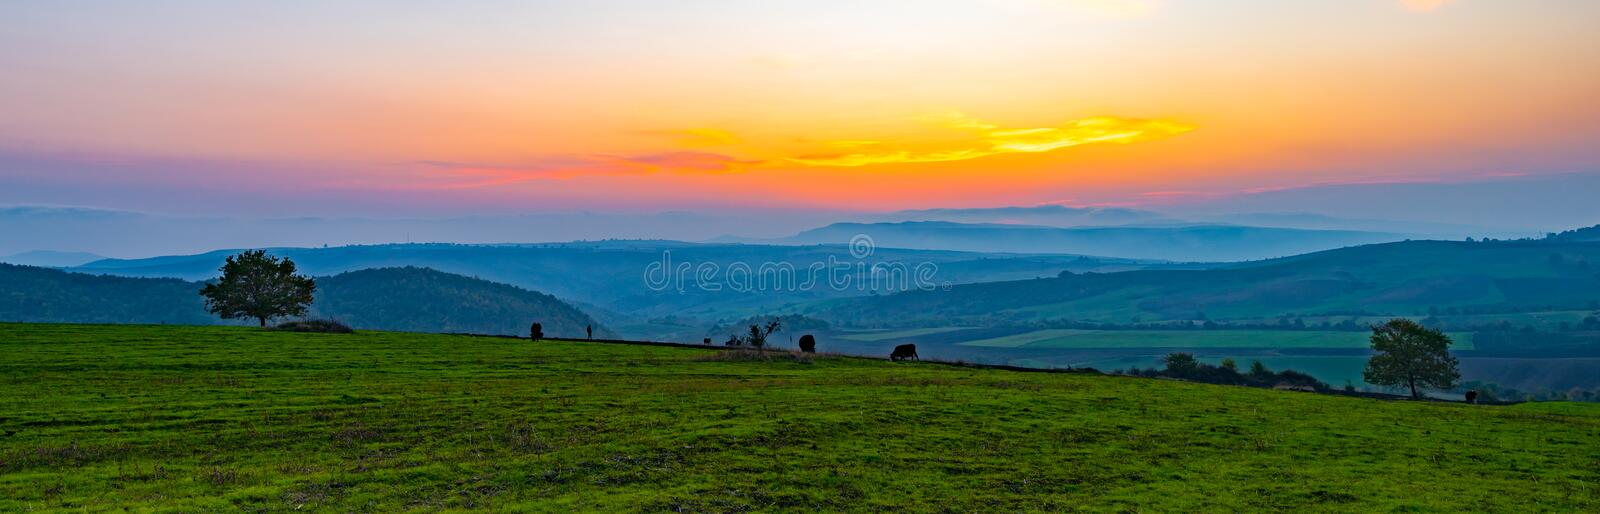 Colorful vibrant sunset, panoramic view to farm fields royalty free stock photos